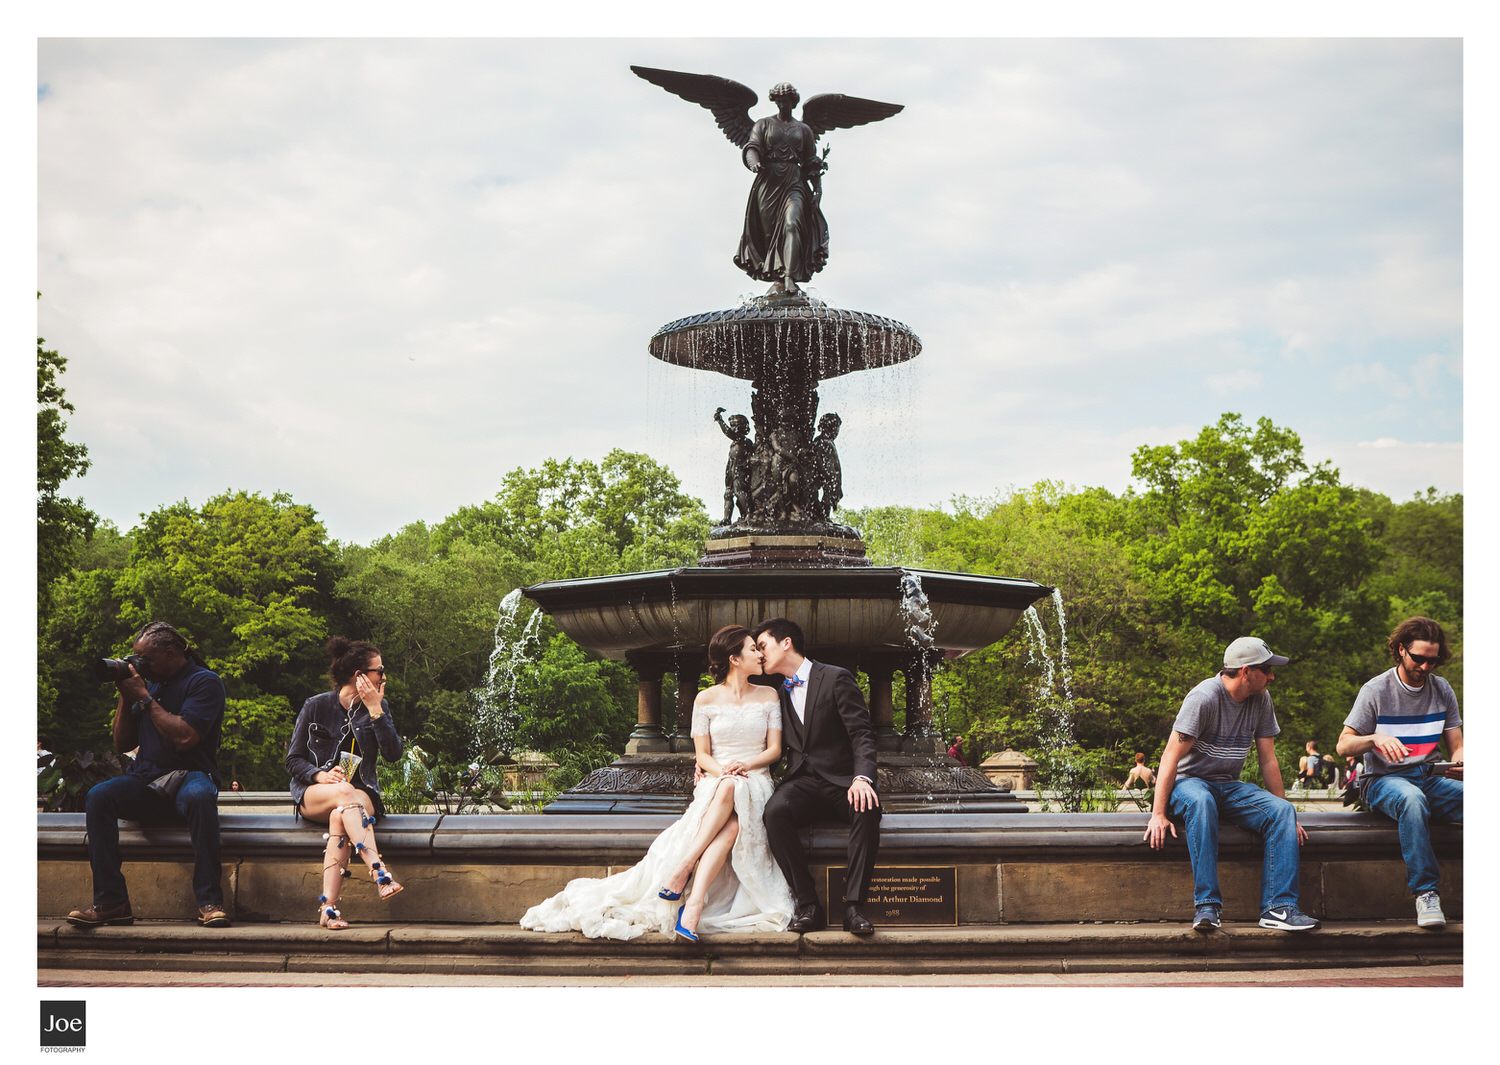 joefotography-23-newyork-central-park-pre-wedding-cindy-larry.jpg